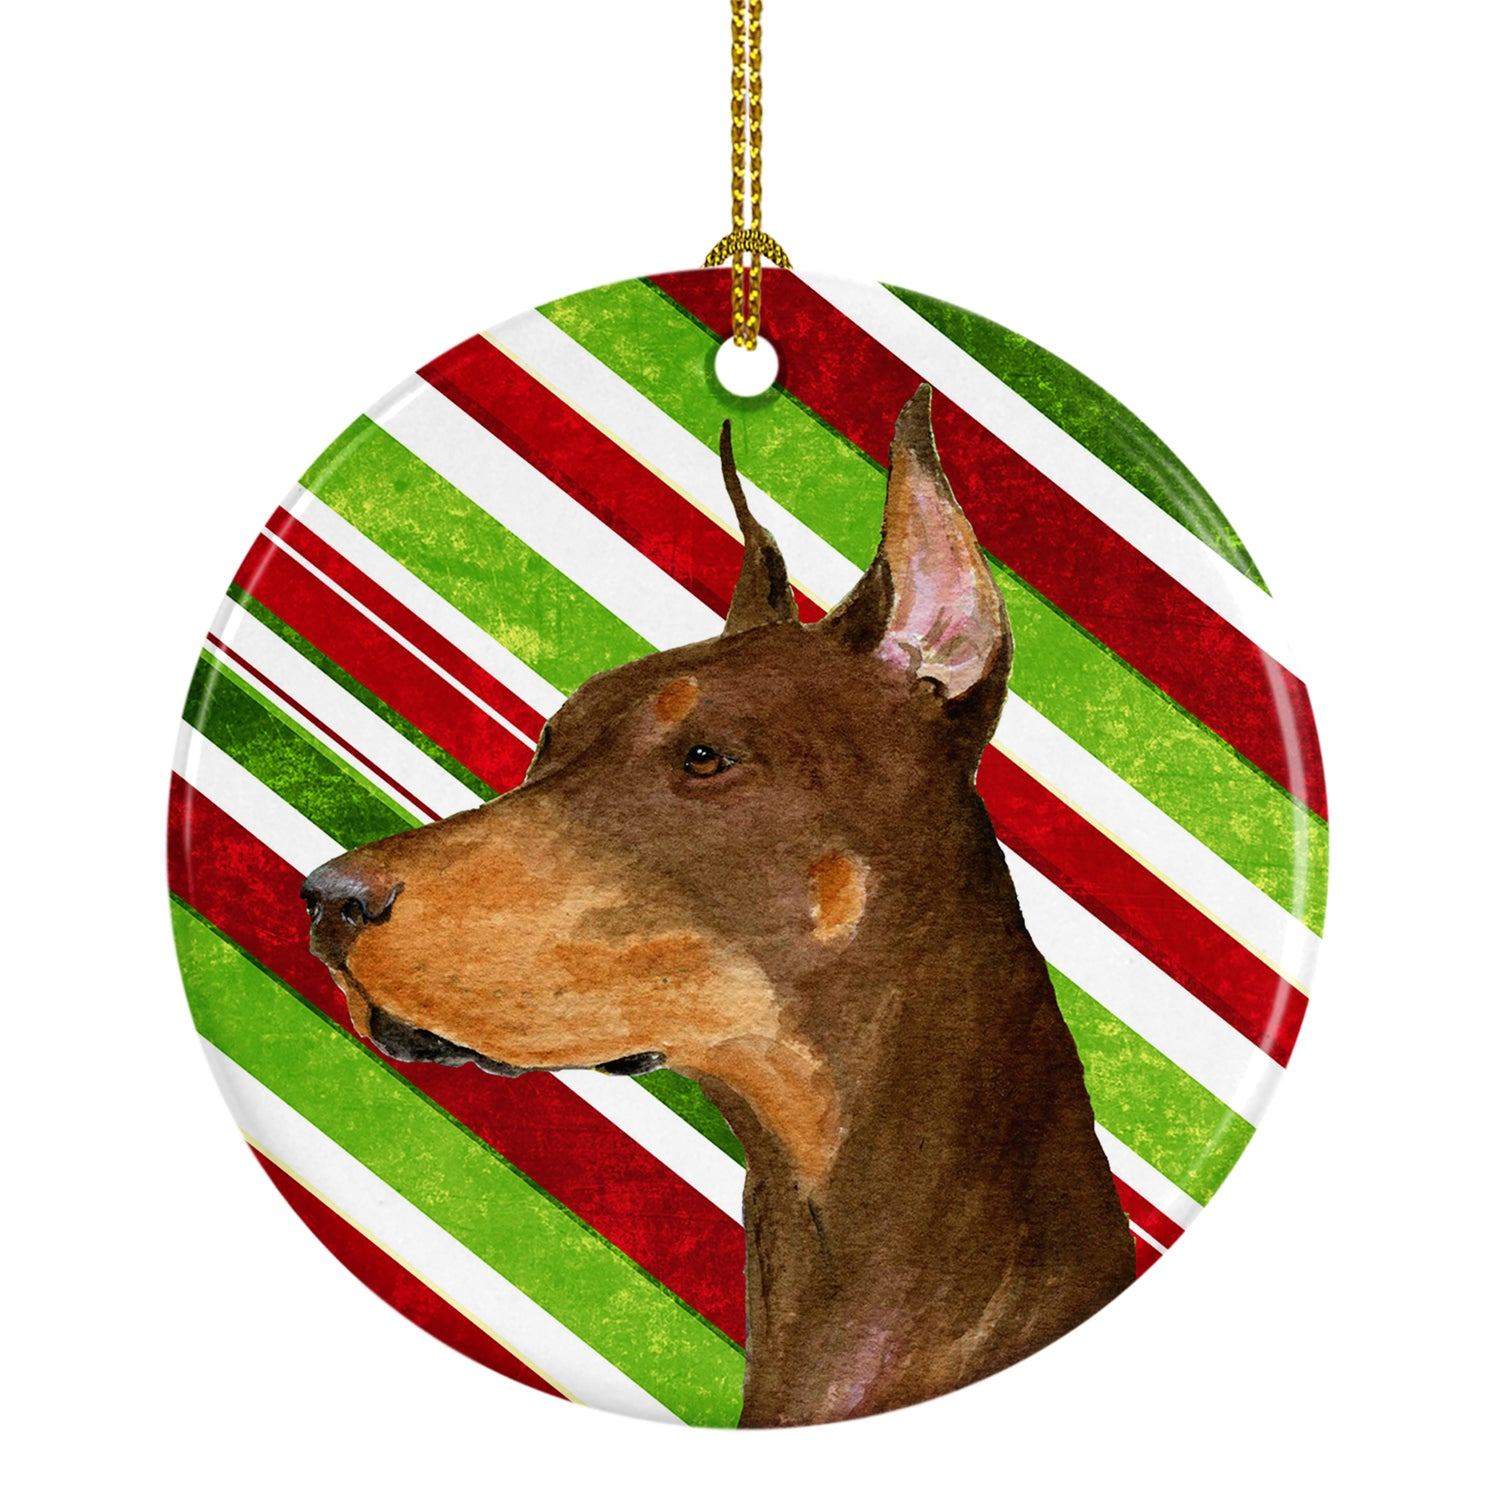 Doberman Candy Cane Holiday Christmas Ceramic Ornament SS4537 by Caroline's Treasures